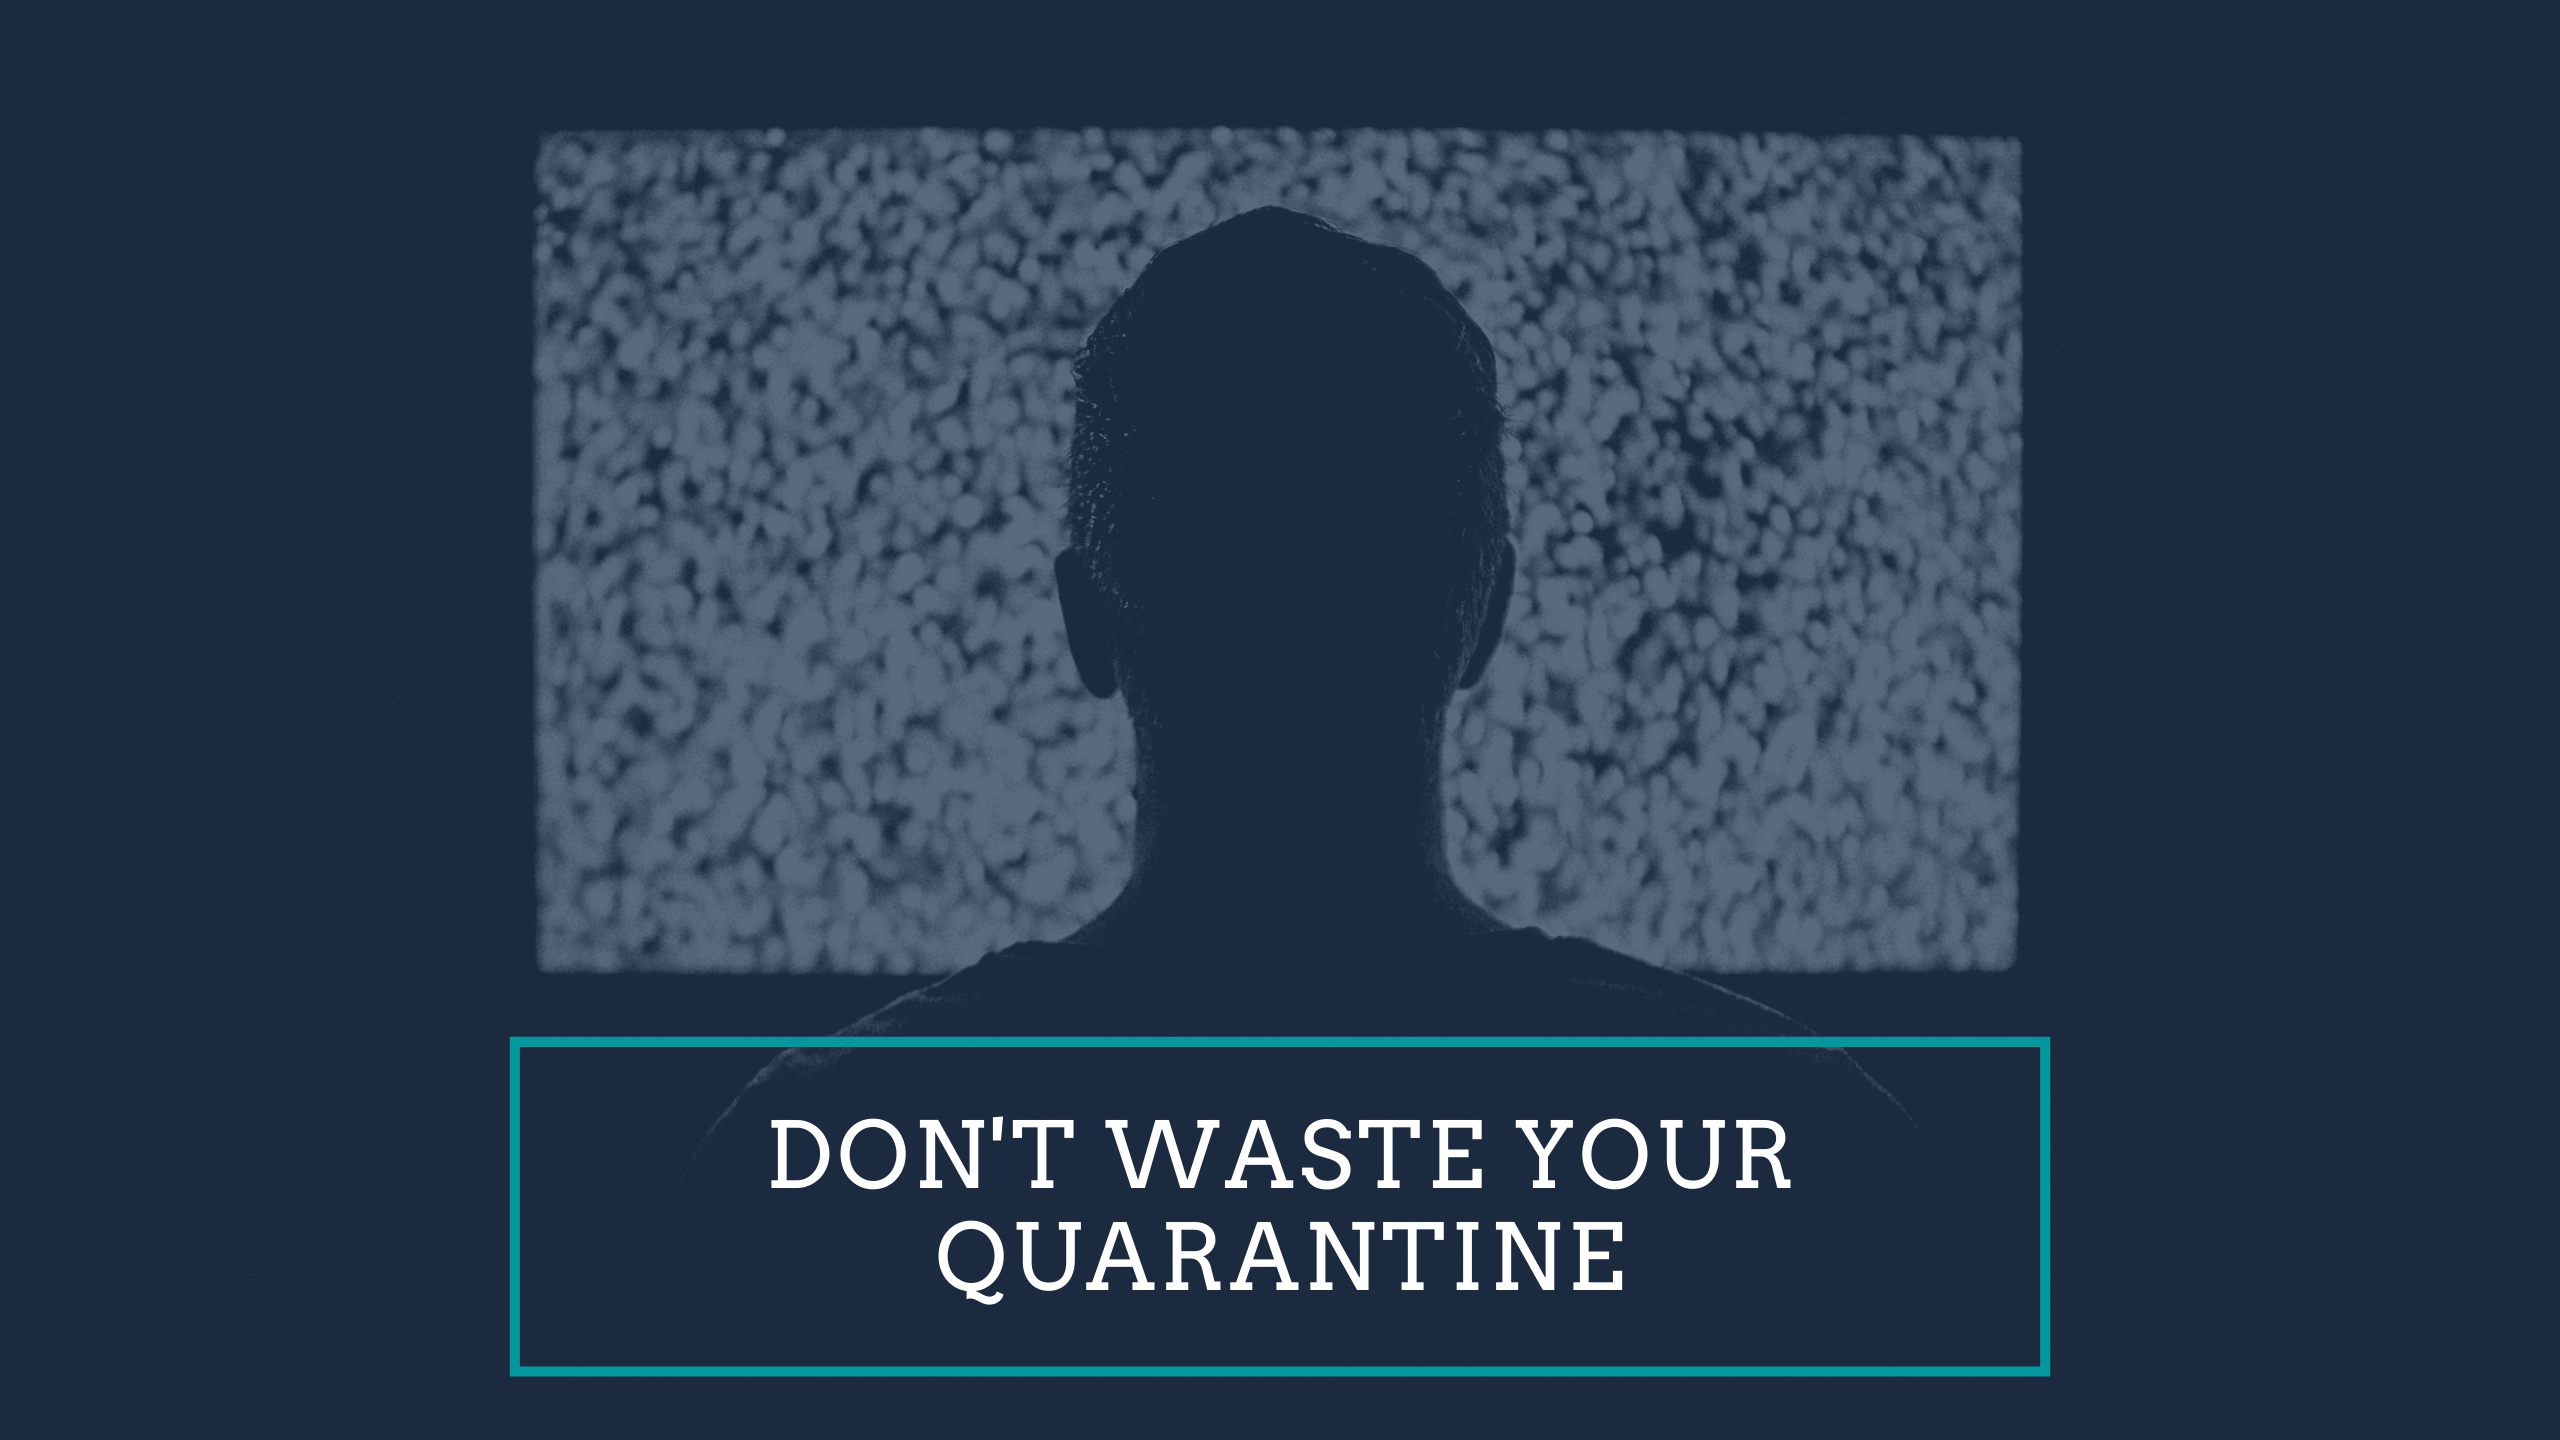 Don't Waste Your Quarantine banner